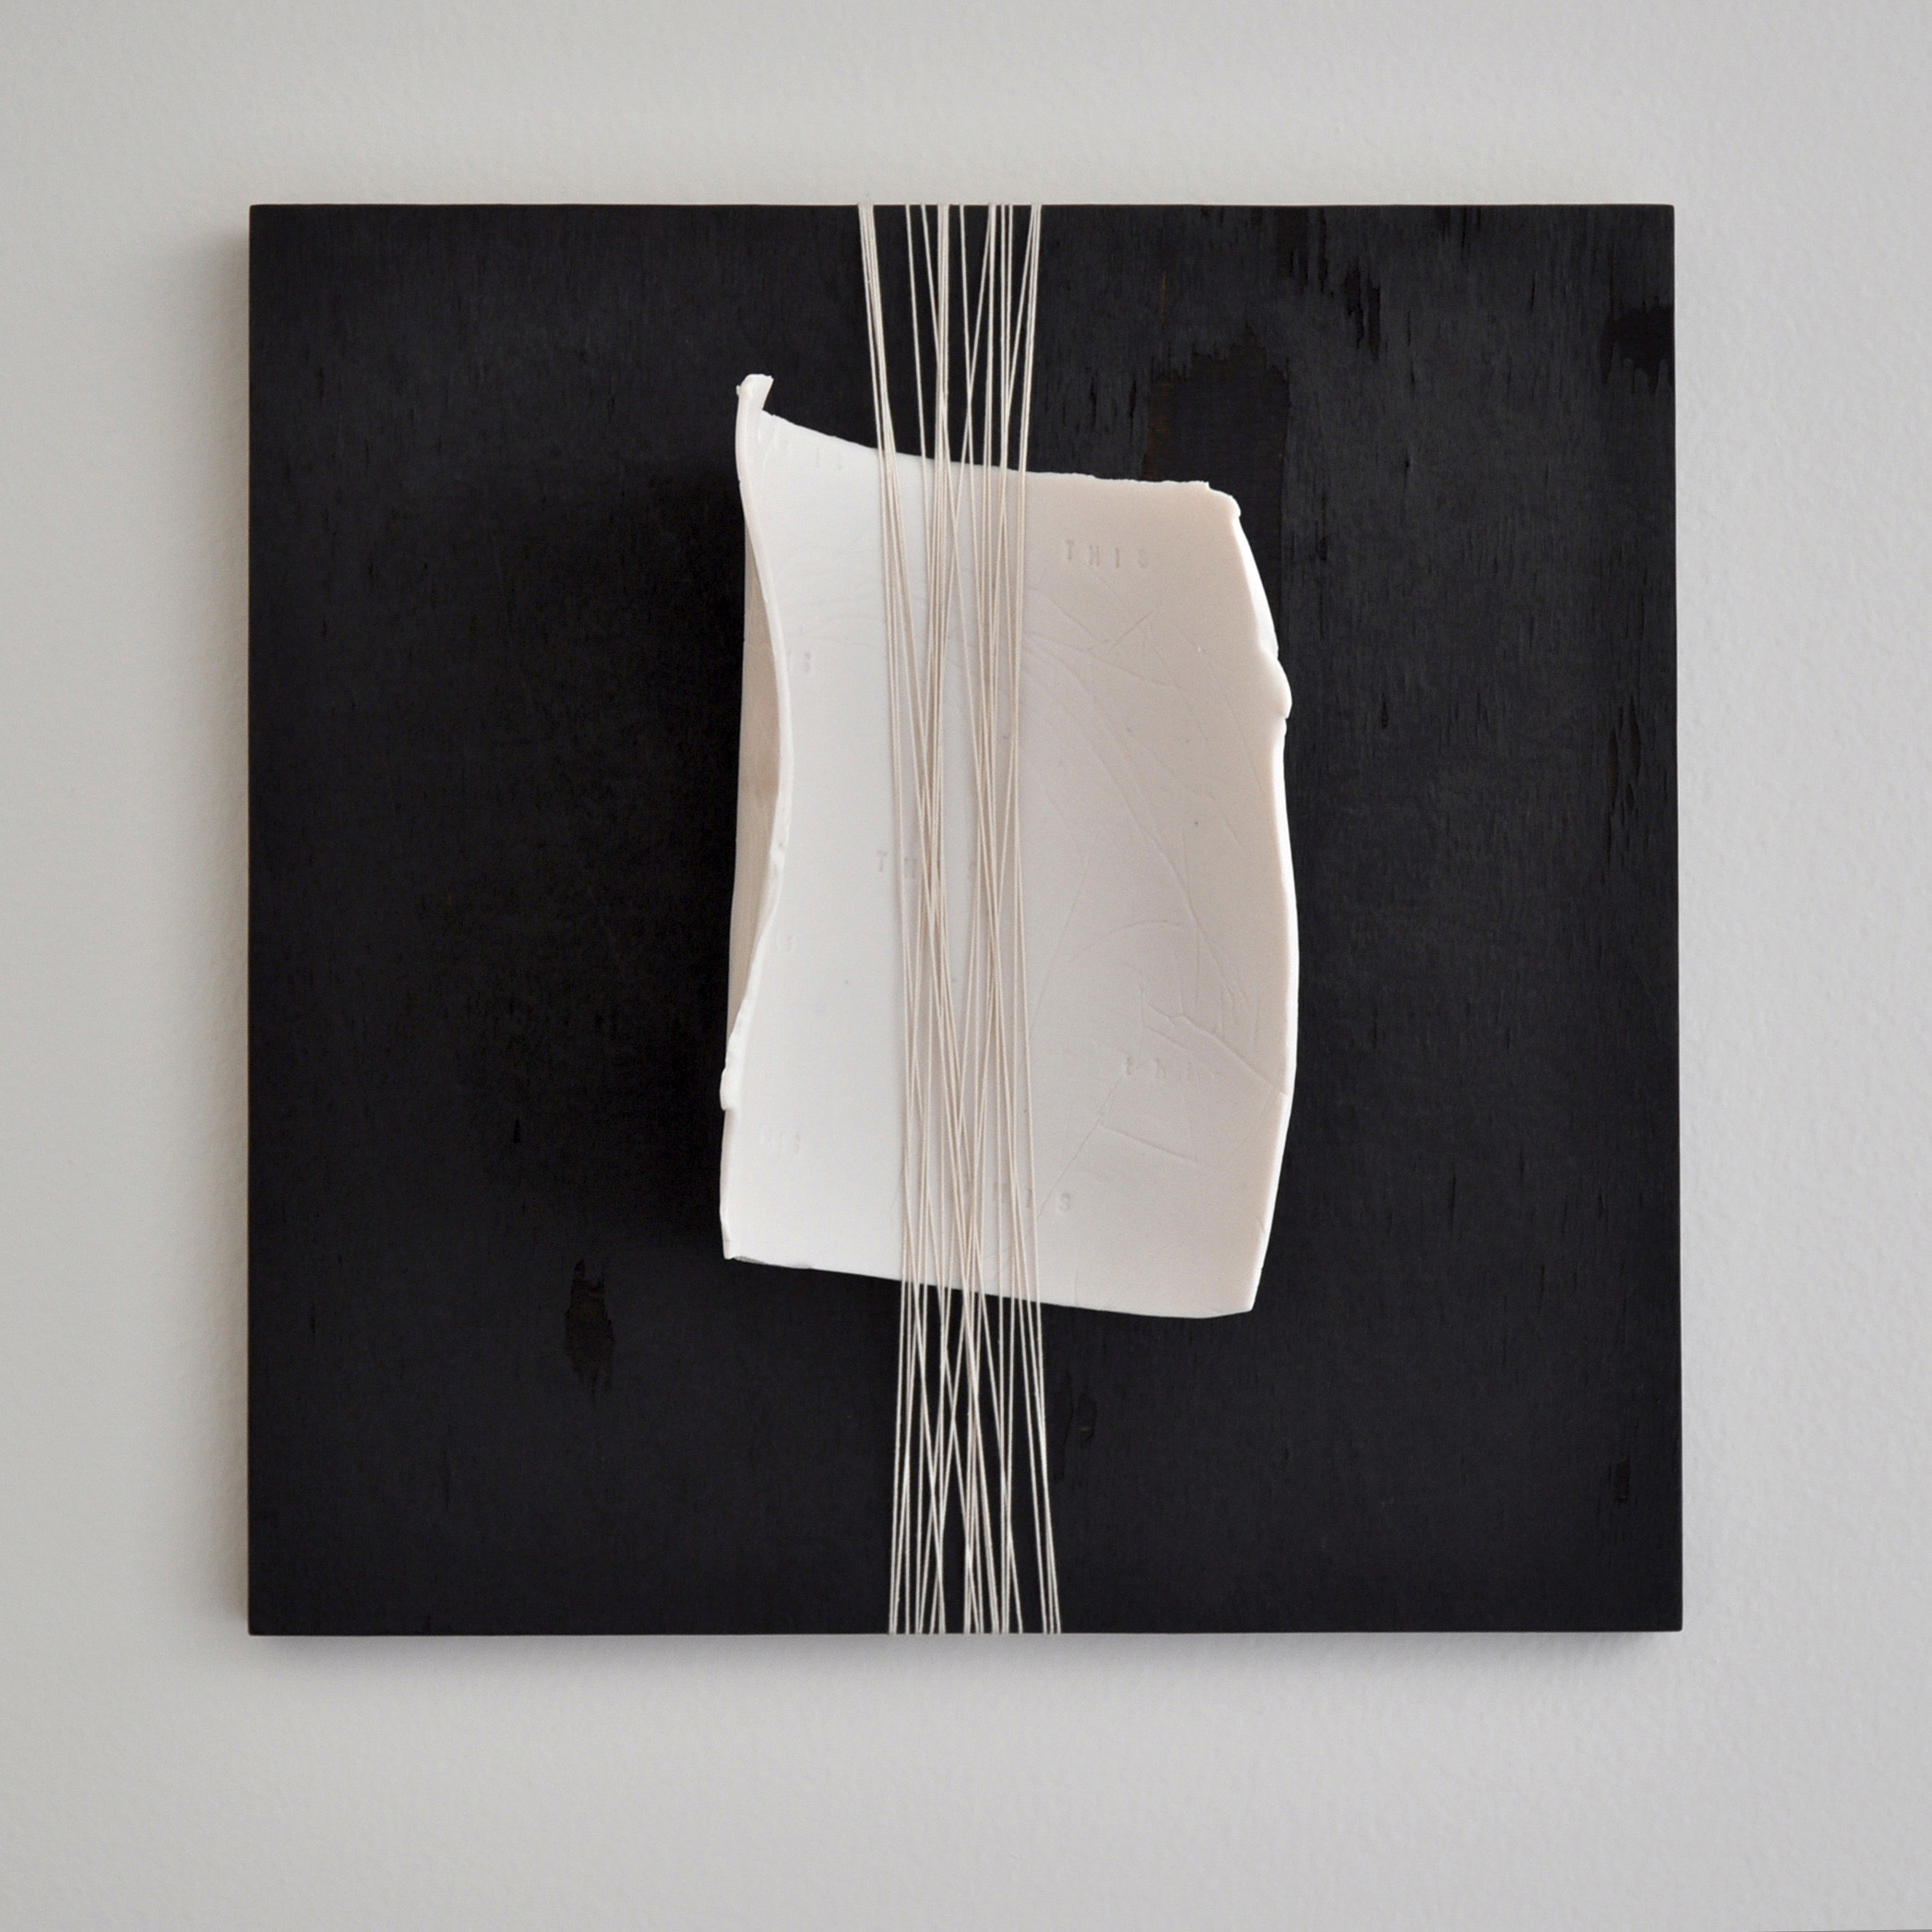 The One v.3, 2019, porcelain, charred wood panel & thread, 12 x 12, $1,200